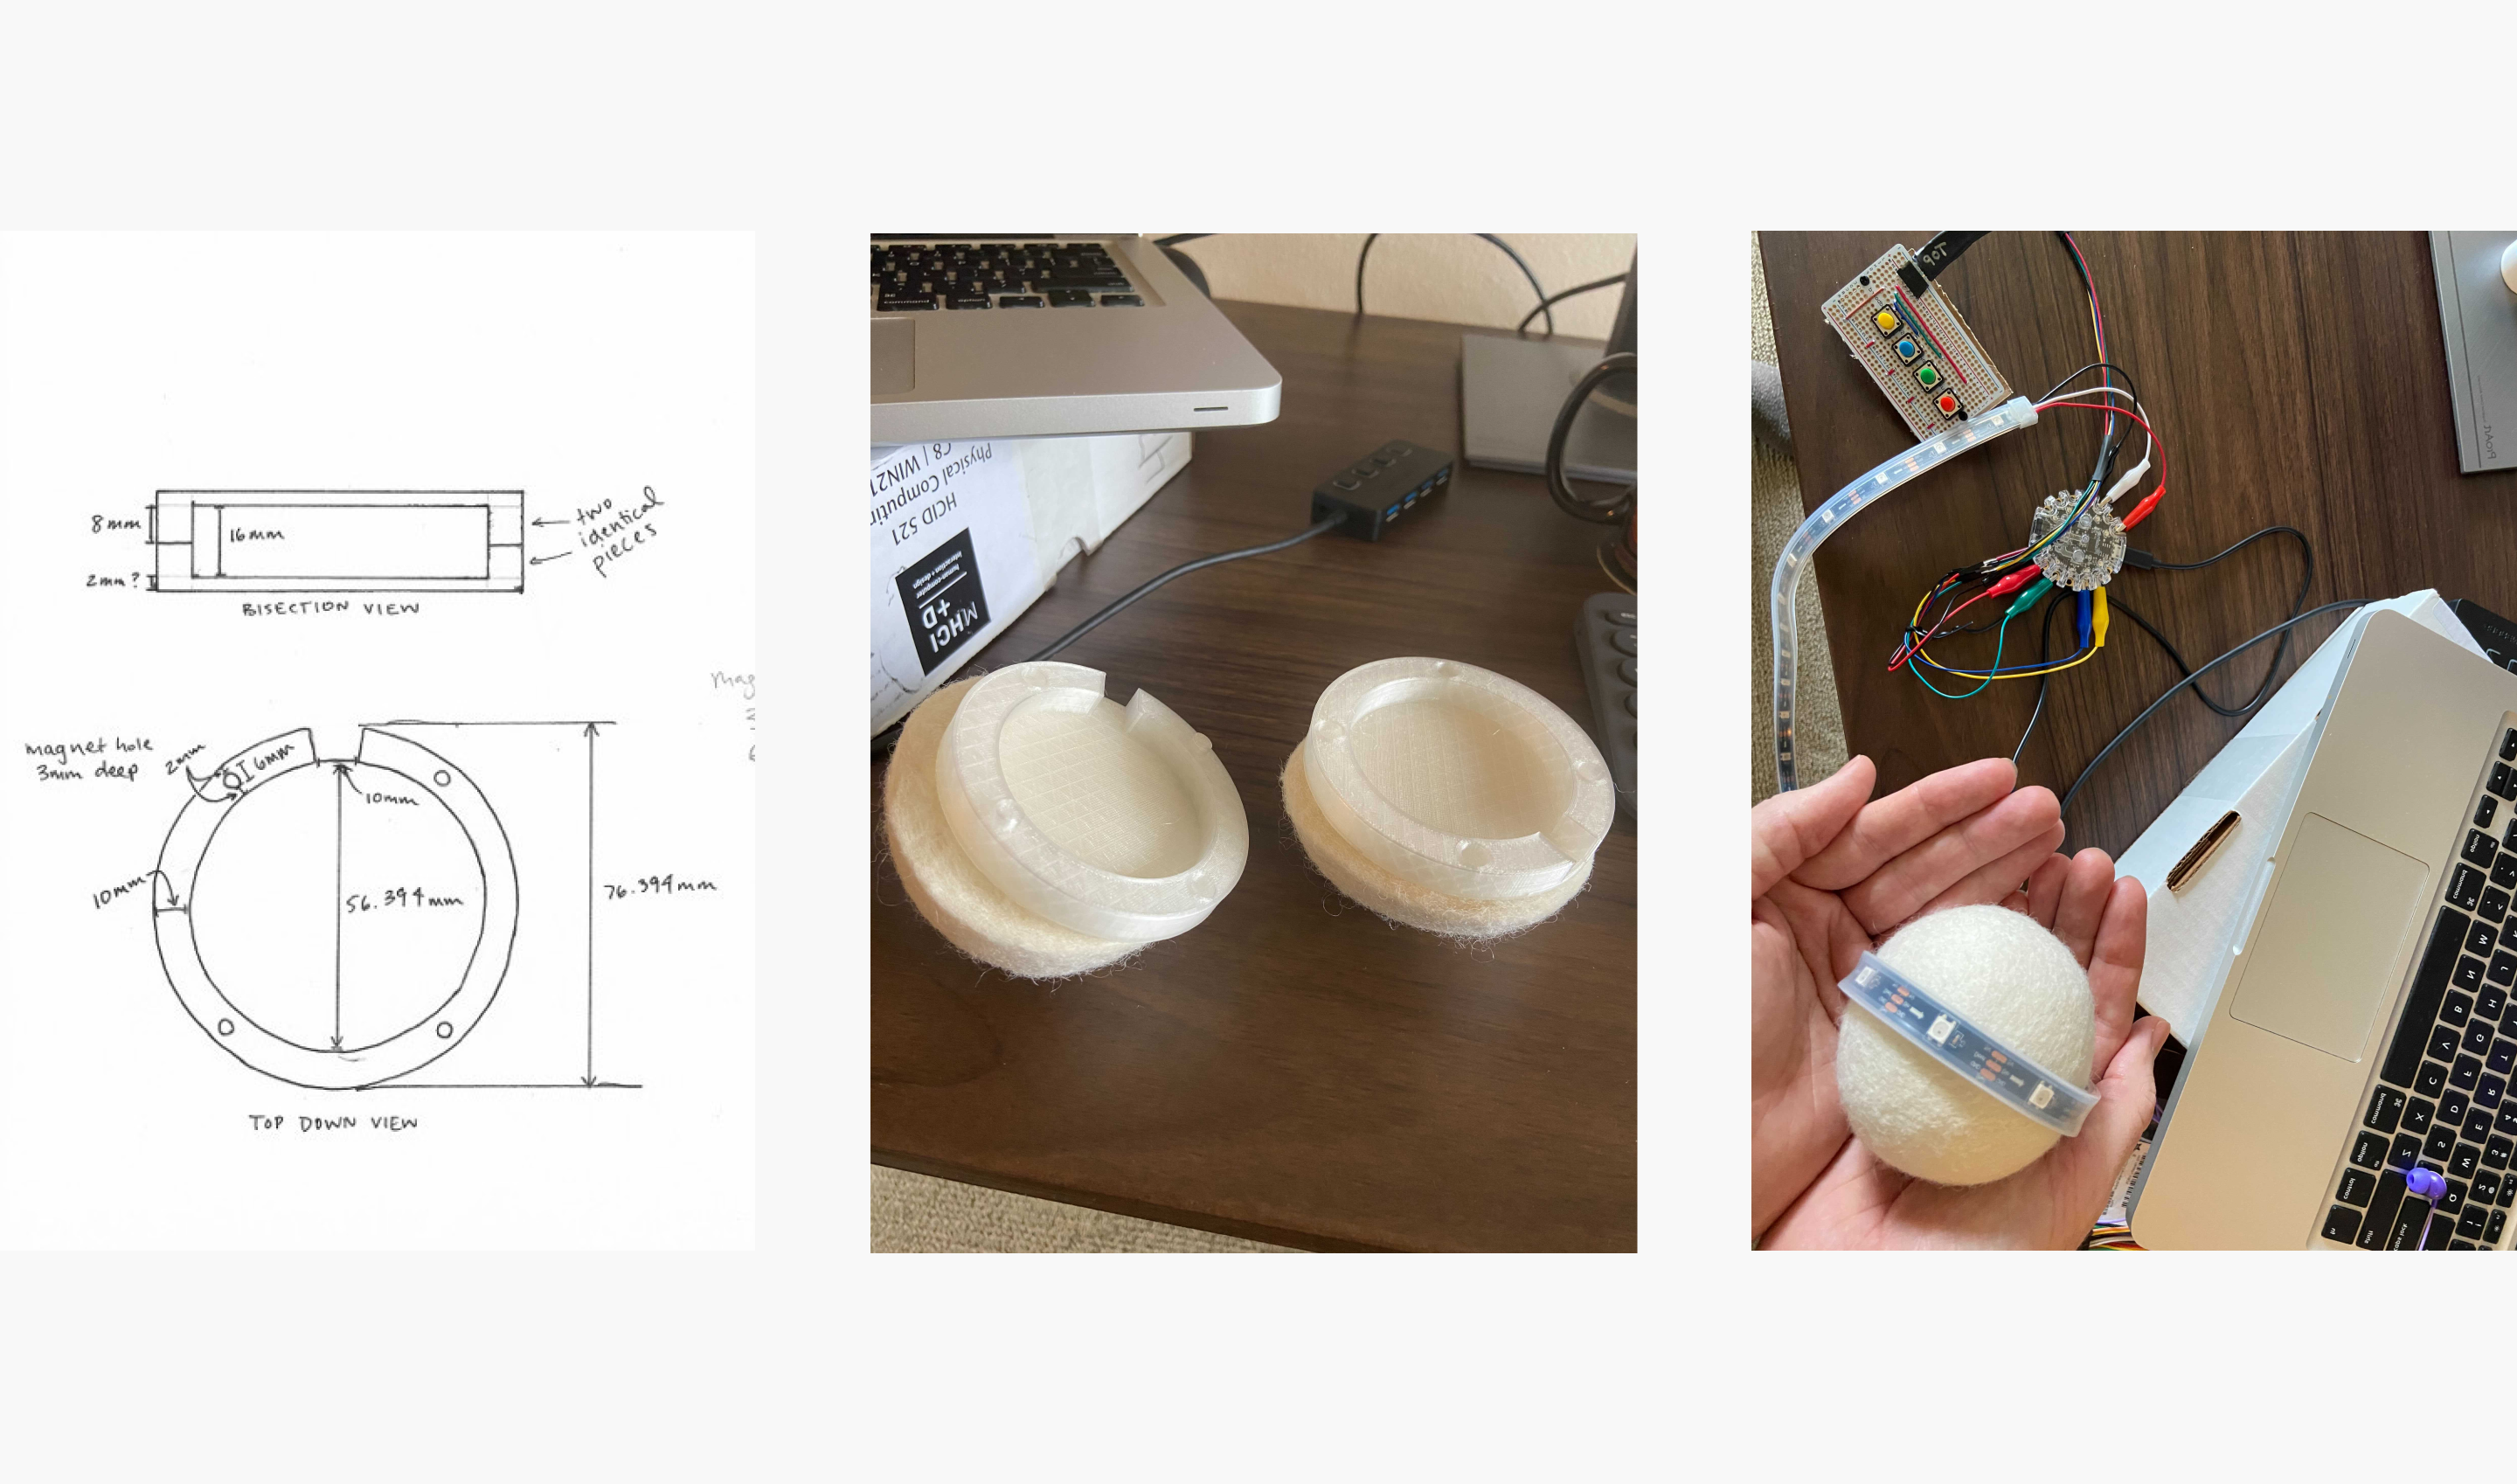 Physical prototyping process featuring sketched device specs, 3D printed core overlaid on a dryer ball cut in half, and the physical prototype with LED light strips wired to a CPX.